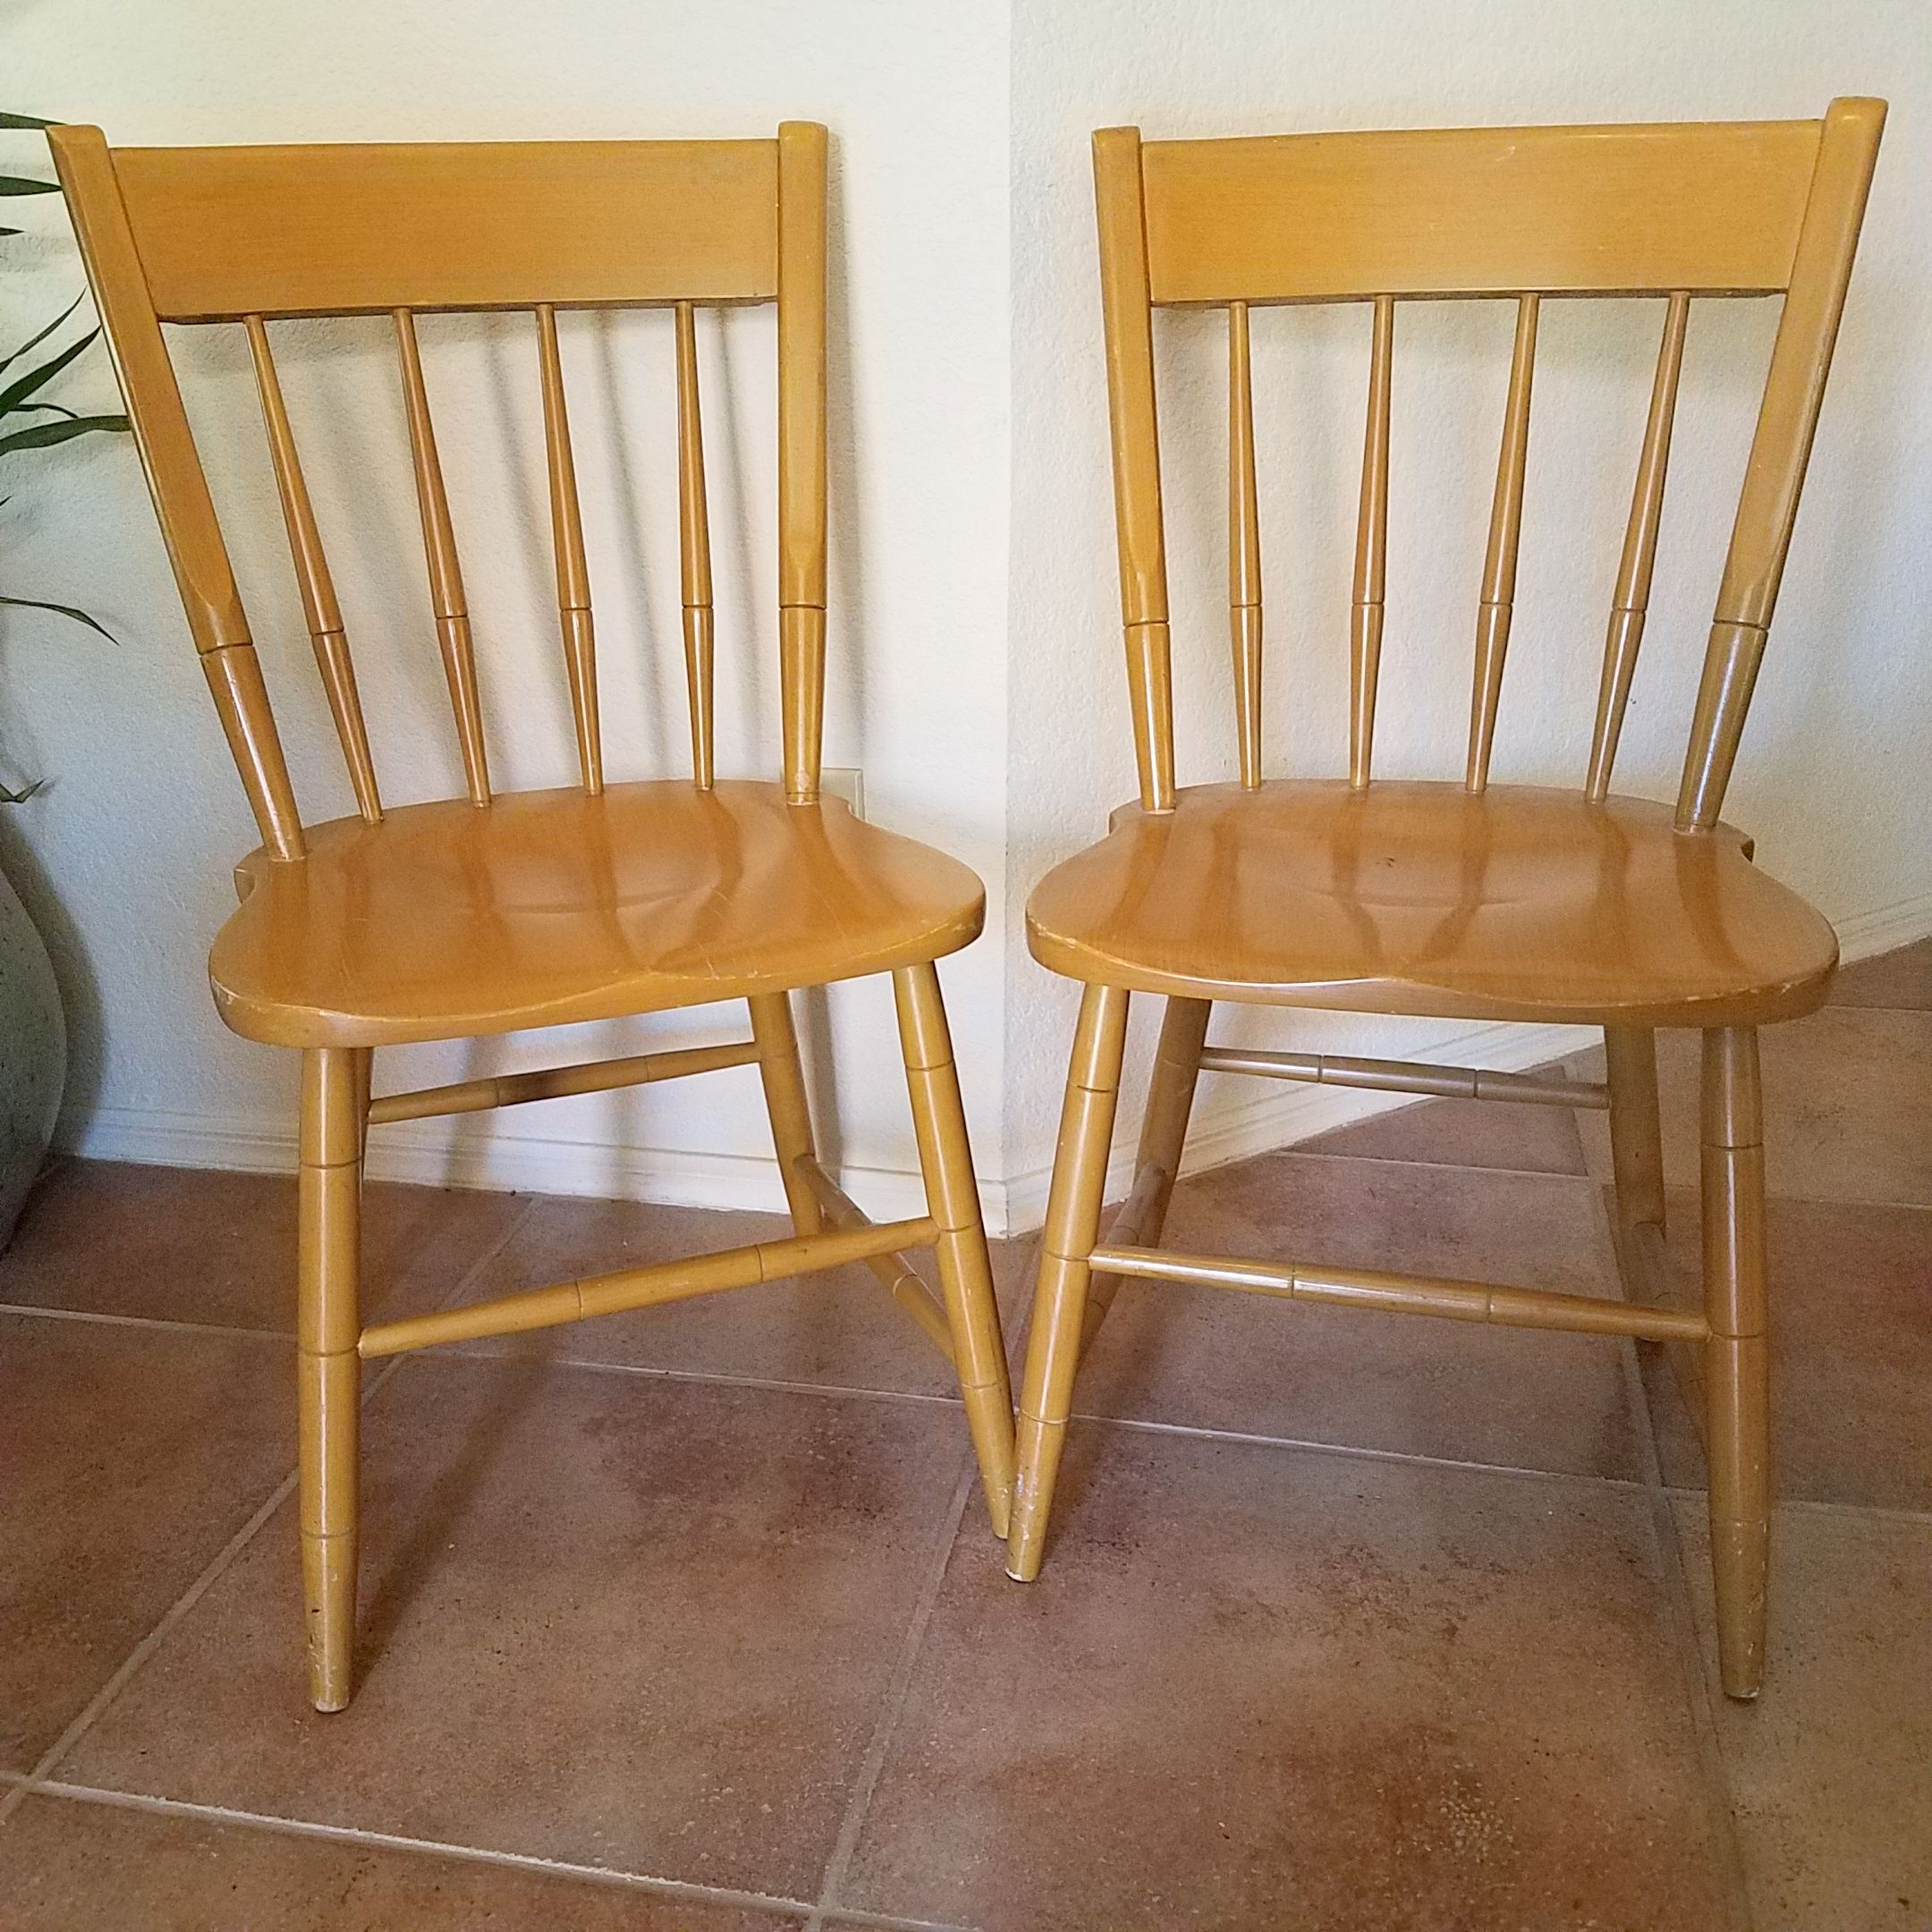 Heywood Wakefield Dining Chairs Heywood Wakefield Dining Chairs Available On Phoenix Craigslist